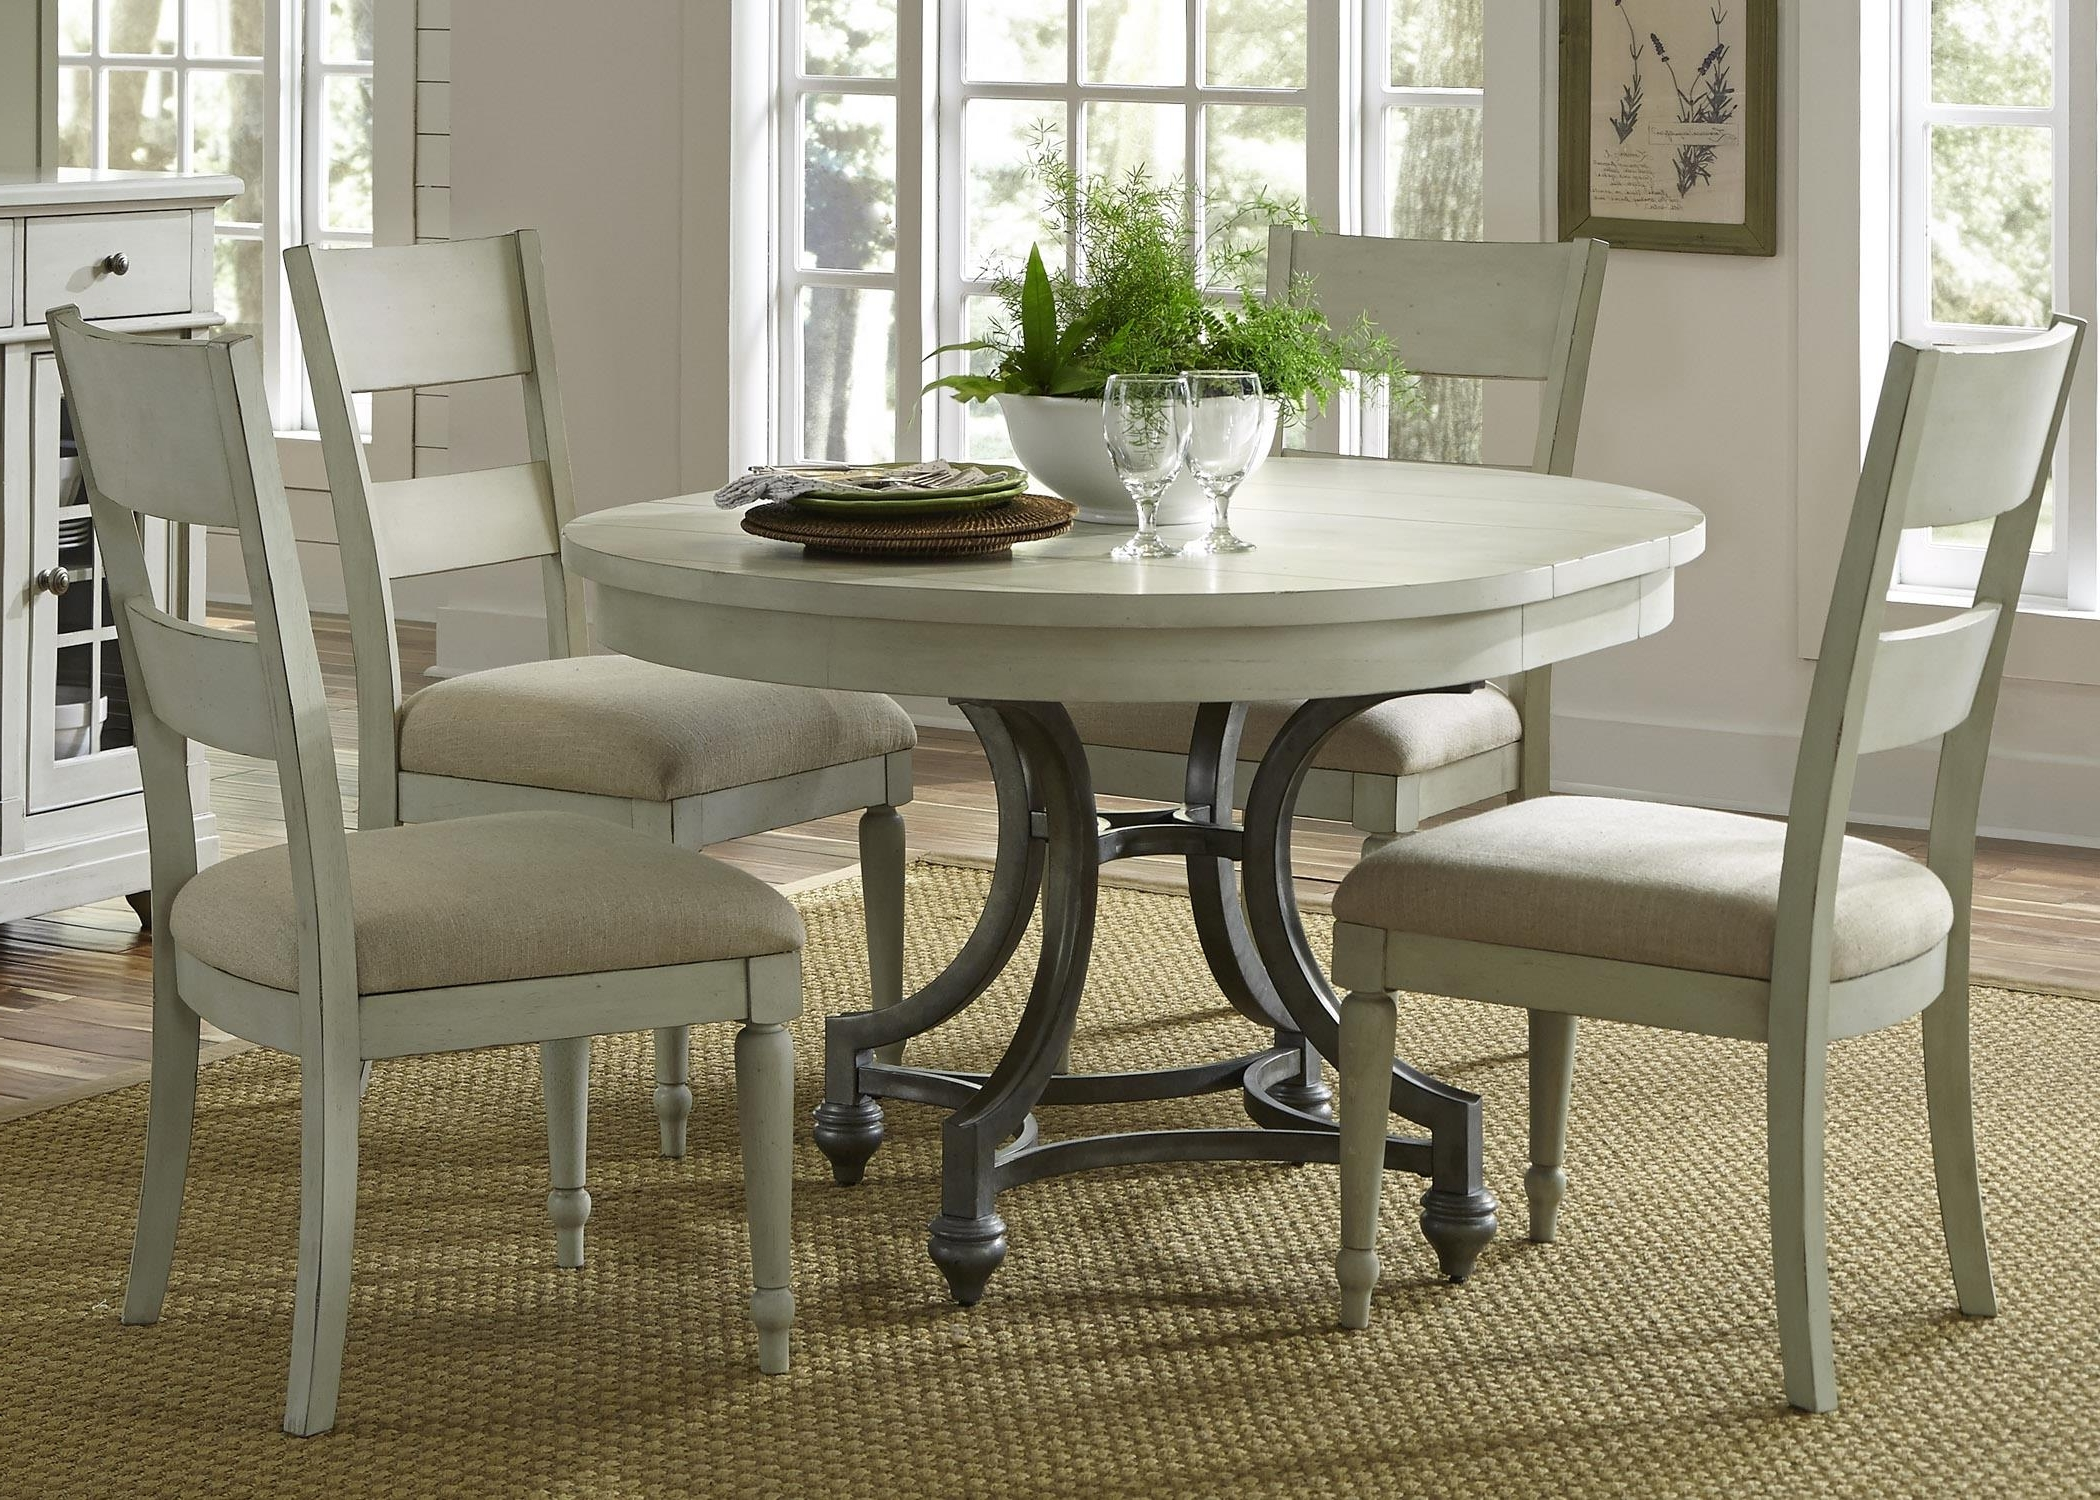 Most Recent Liberty Furniture Harbor View Round Table With 4 Slat Back Chairs For Jaxon 5 Piece Round Dining Sets With Upholstered Chairs (Gallery 7 of 25)